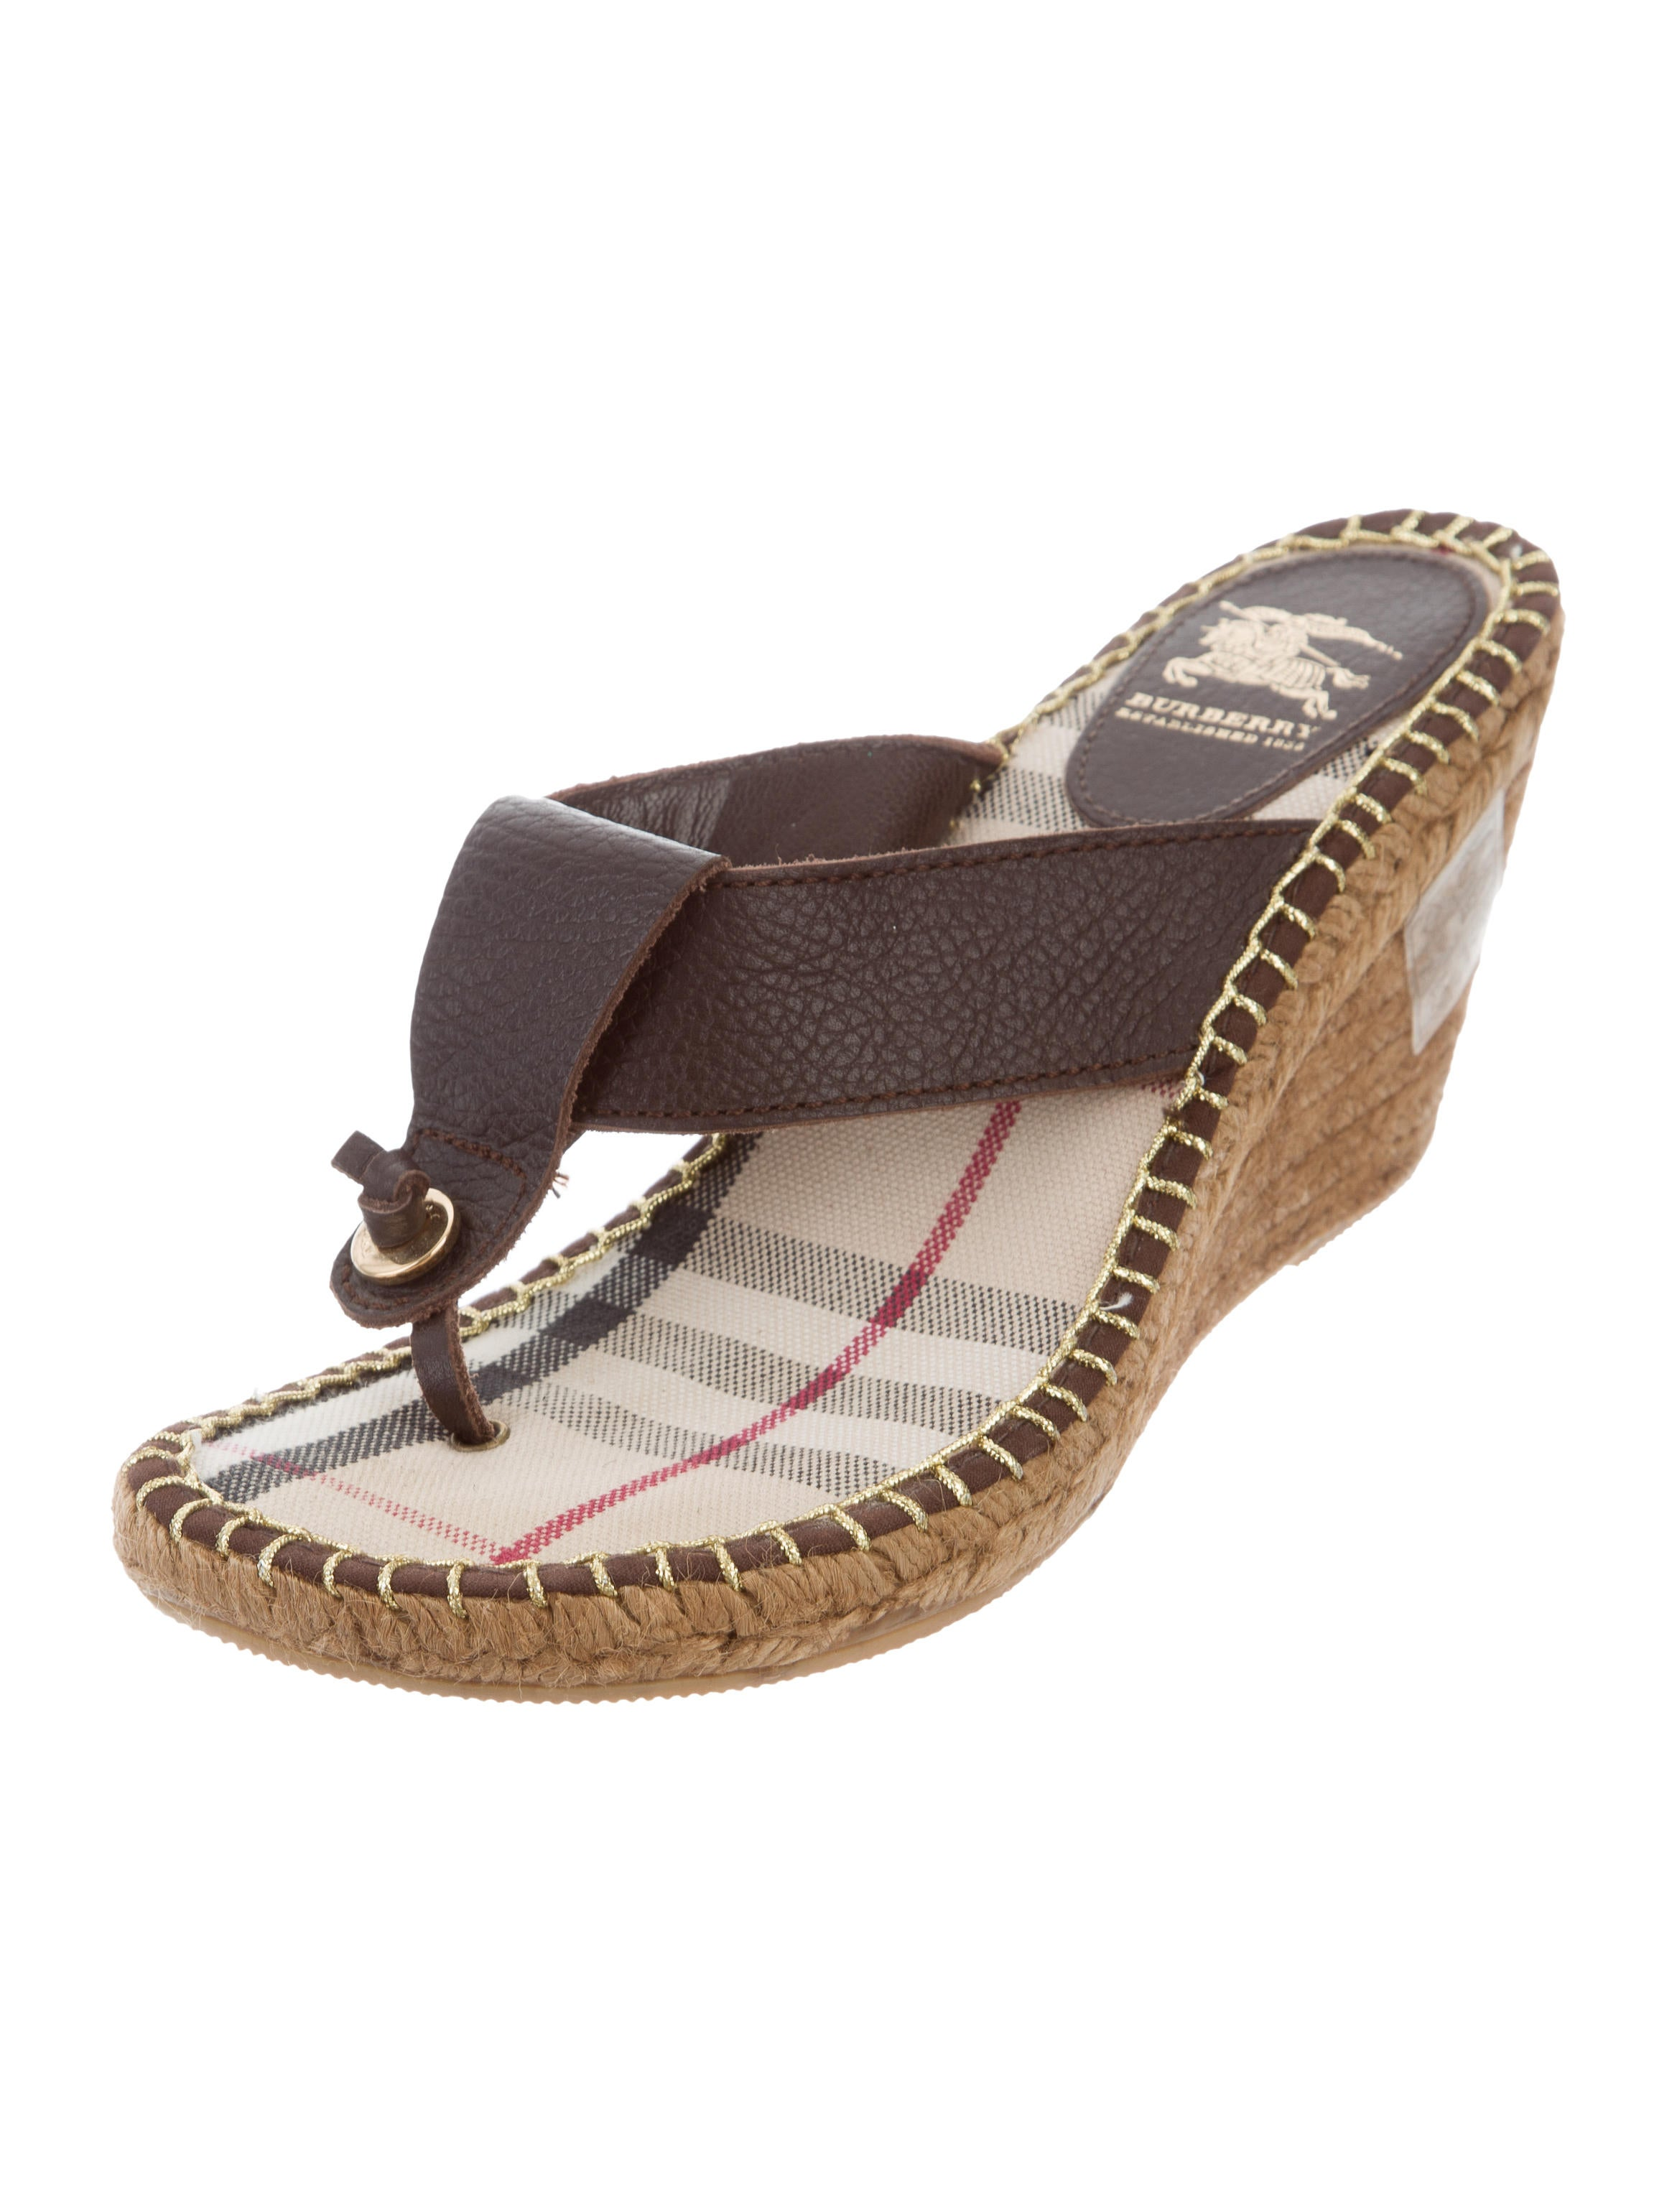 burberry leather wedge sandals shoes bur78017 the